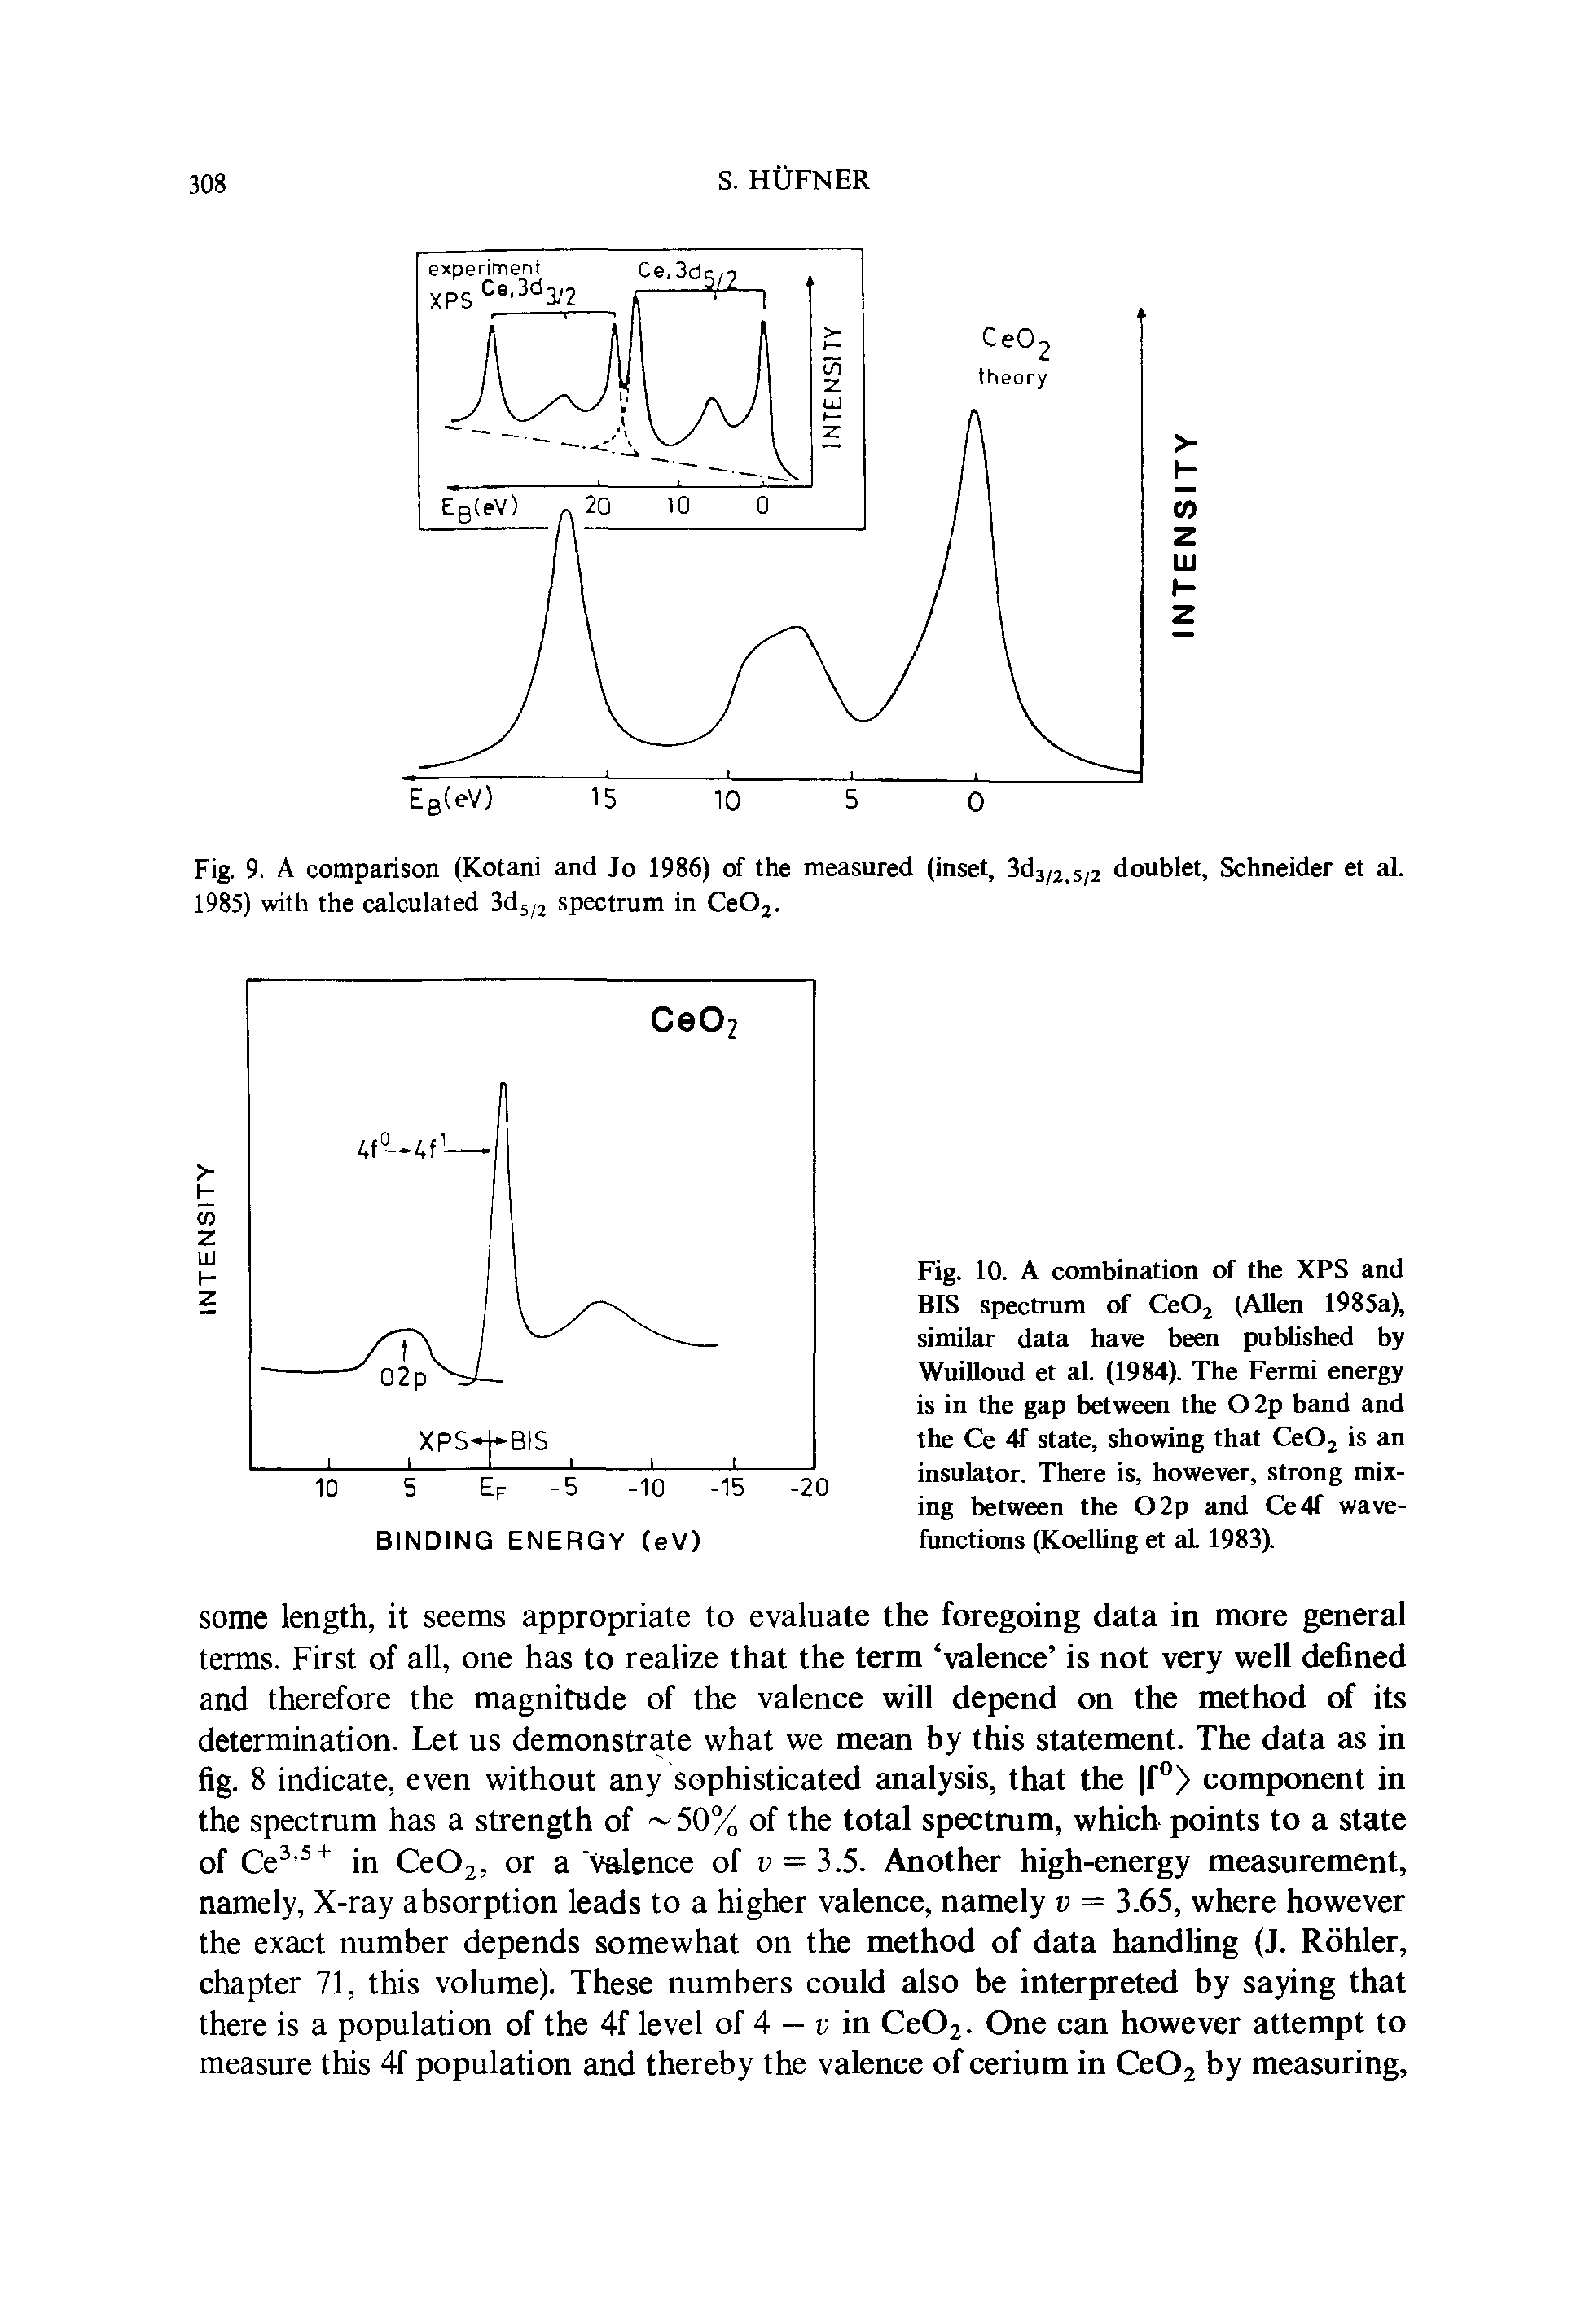 Fig. 10. A combination of the XPS and BIS spectrum of CeOj (Allen 1985a), similar data have been pubhshed by Wuilloud et al. (1984). The Fermi energy is in the gap between the O 2p band and the Ce 4f state, showing that CeOj is an insulator. There is, however, strong mixing between the 02p and Ce4f wave-functions (Koelling et aL 1983X...